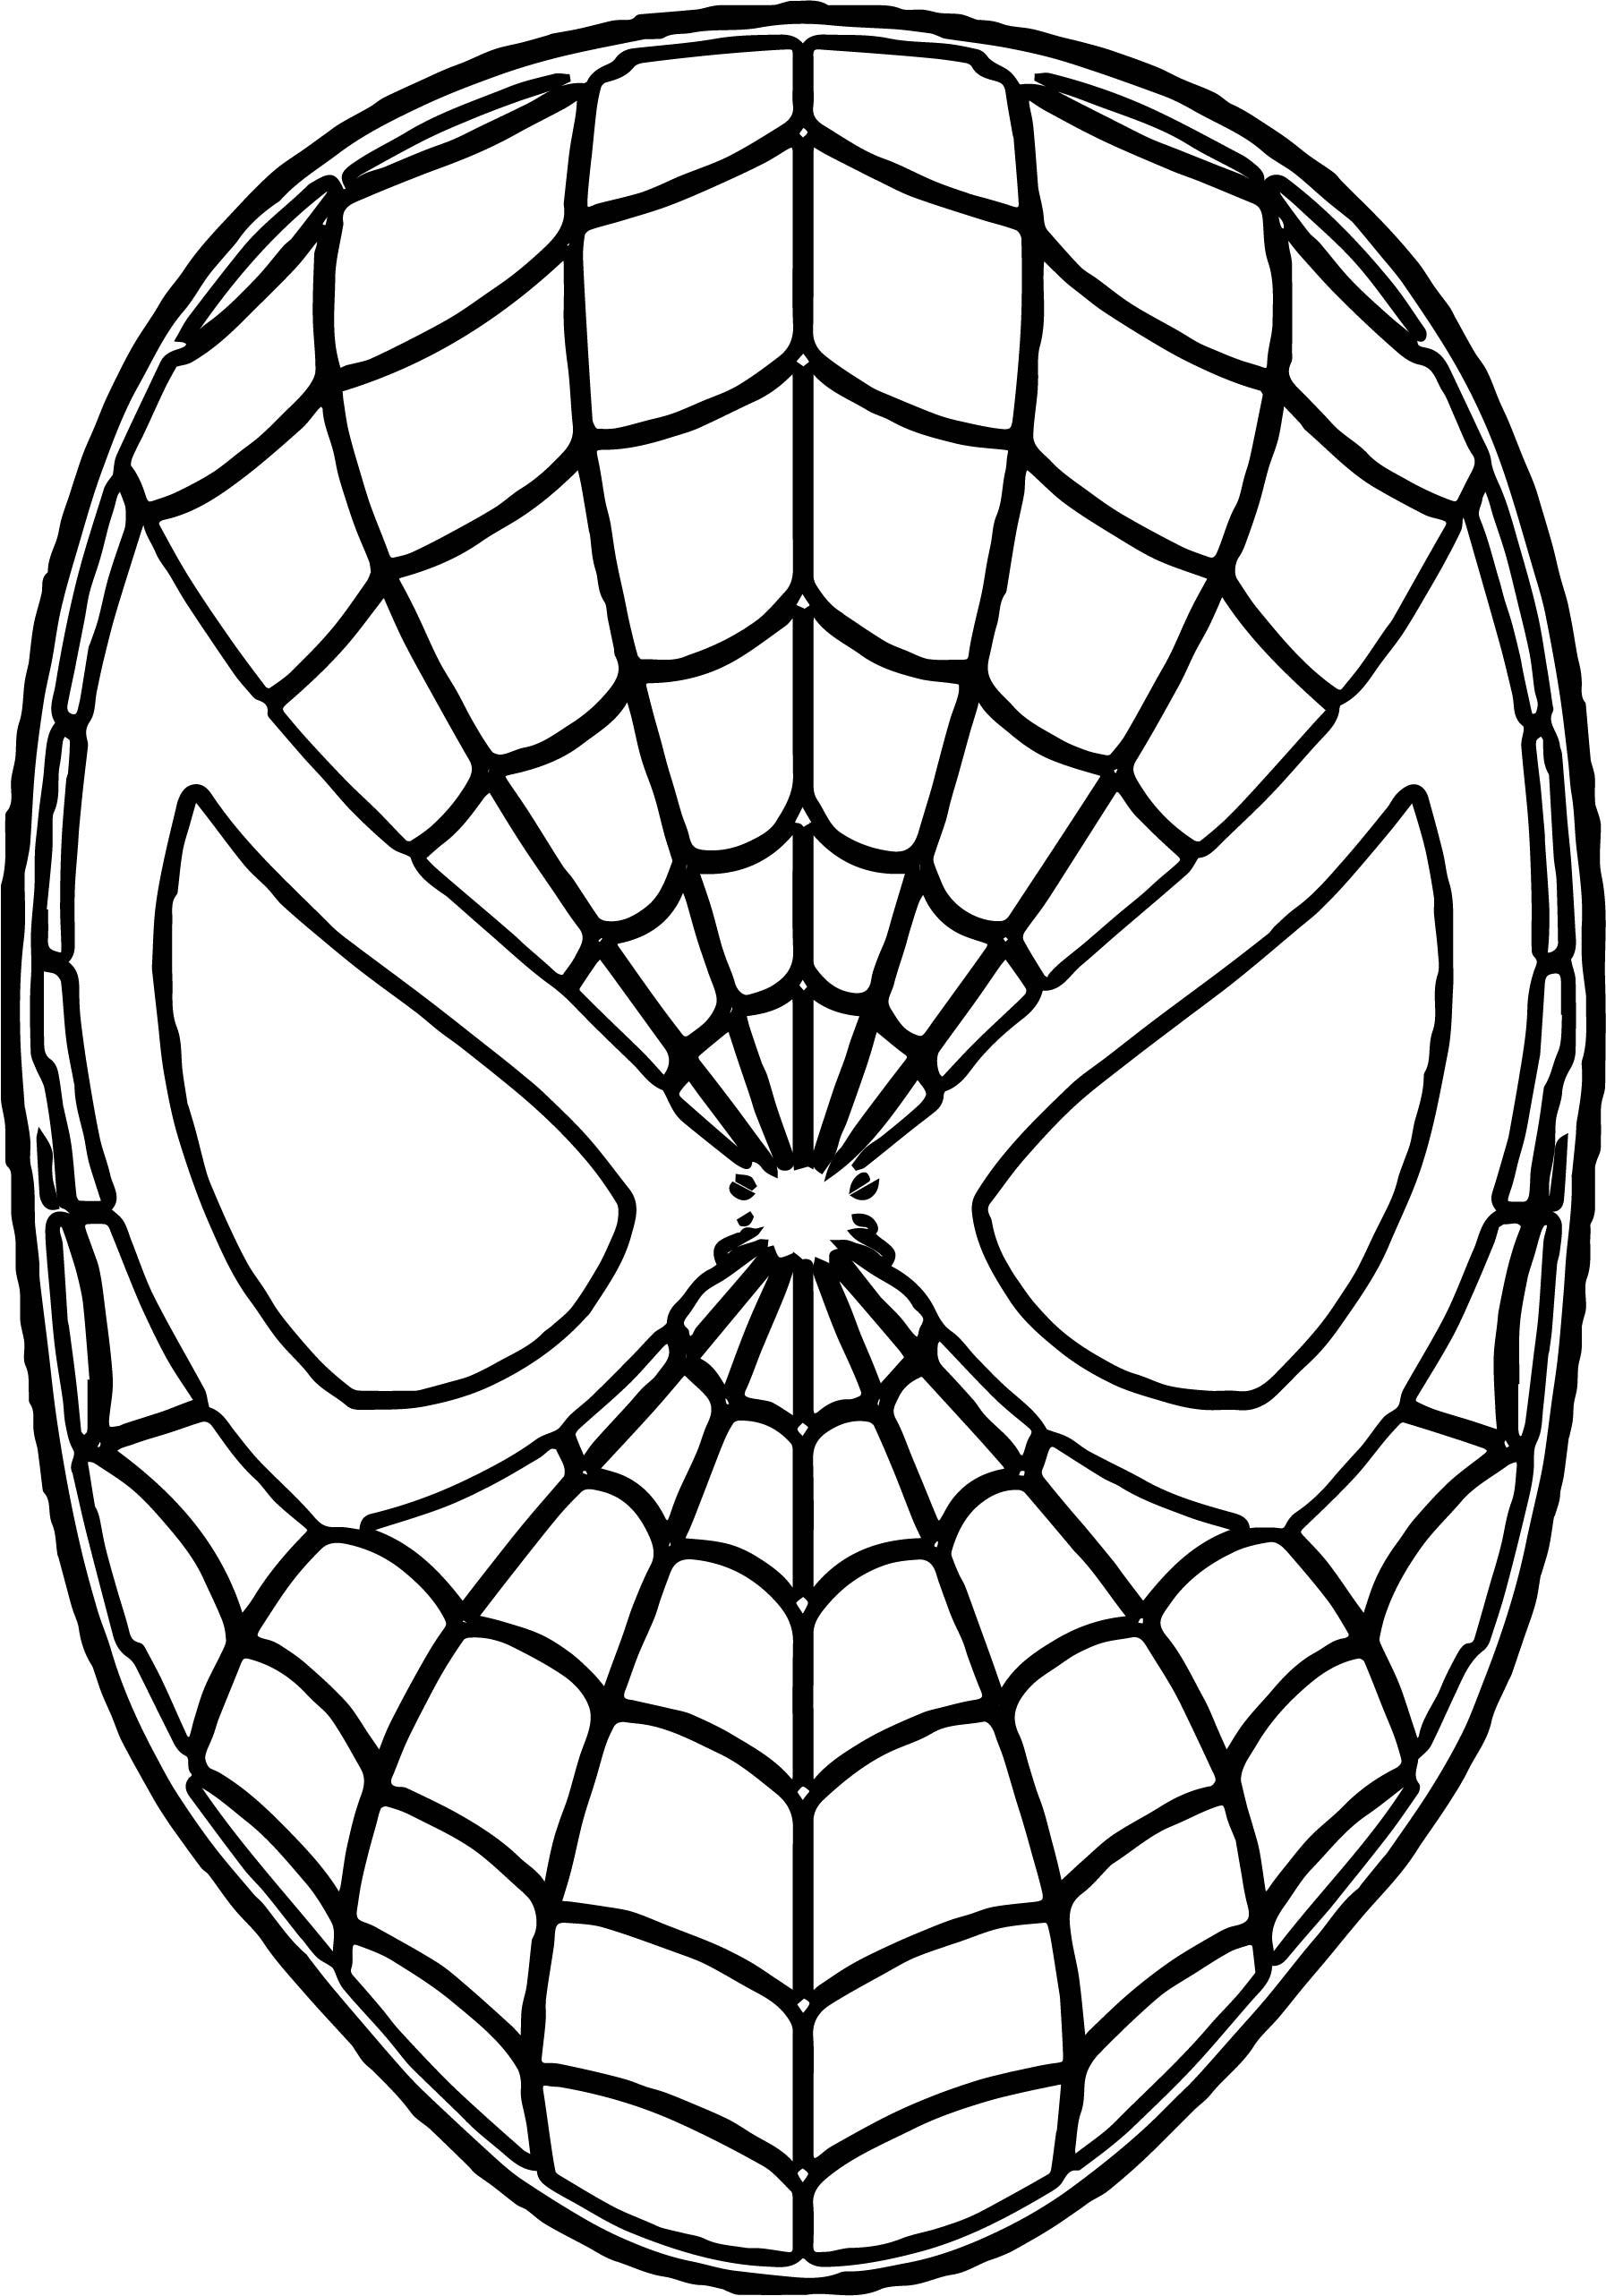 Male Face Printable Coloring Pages. Male. Best Free